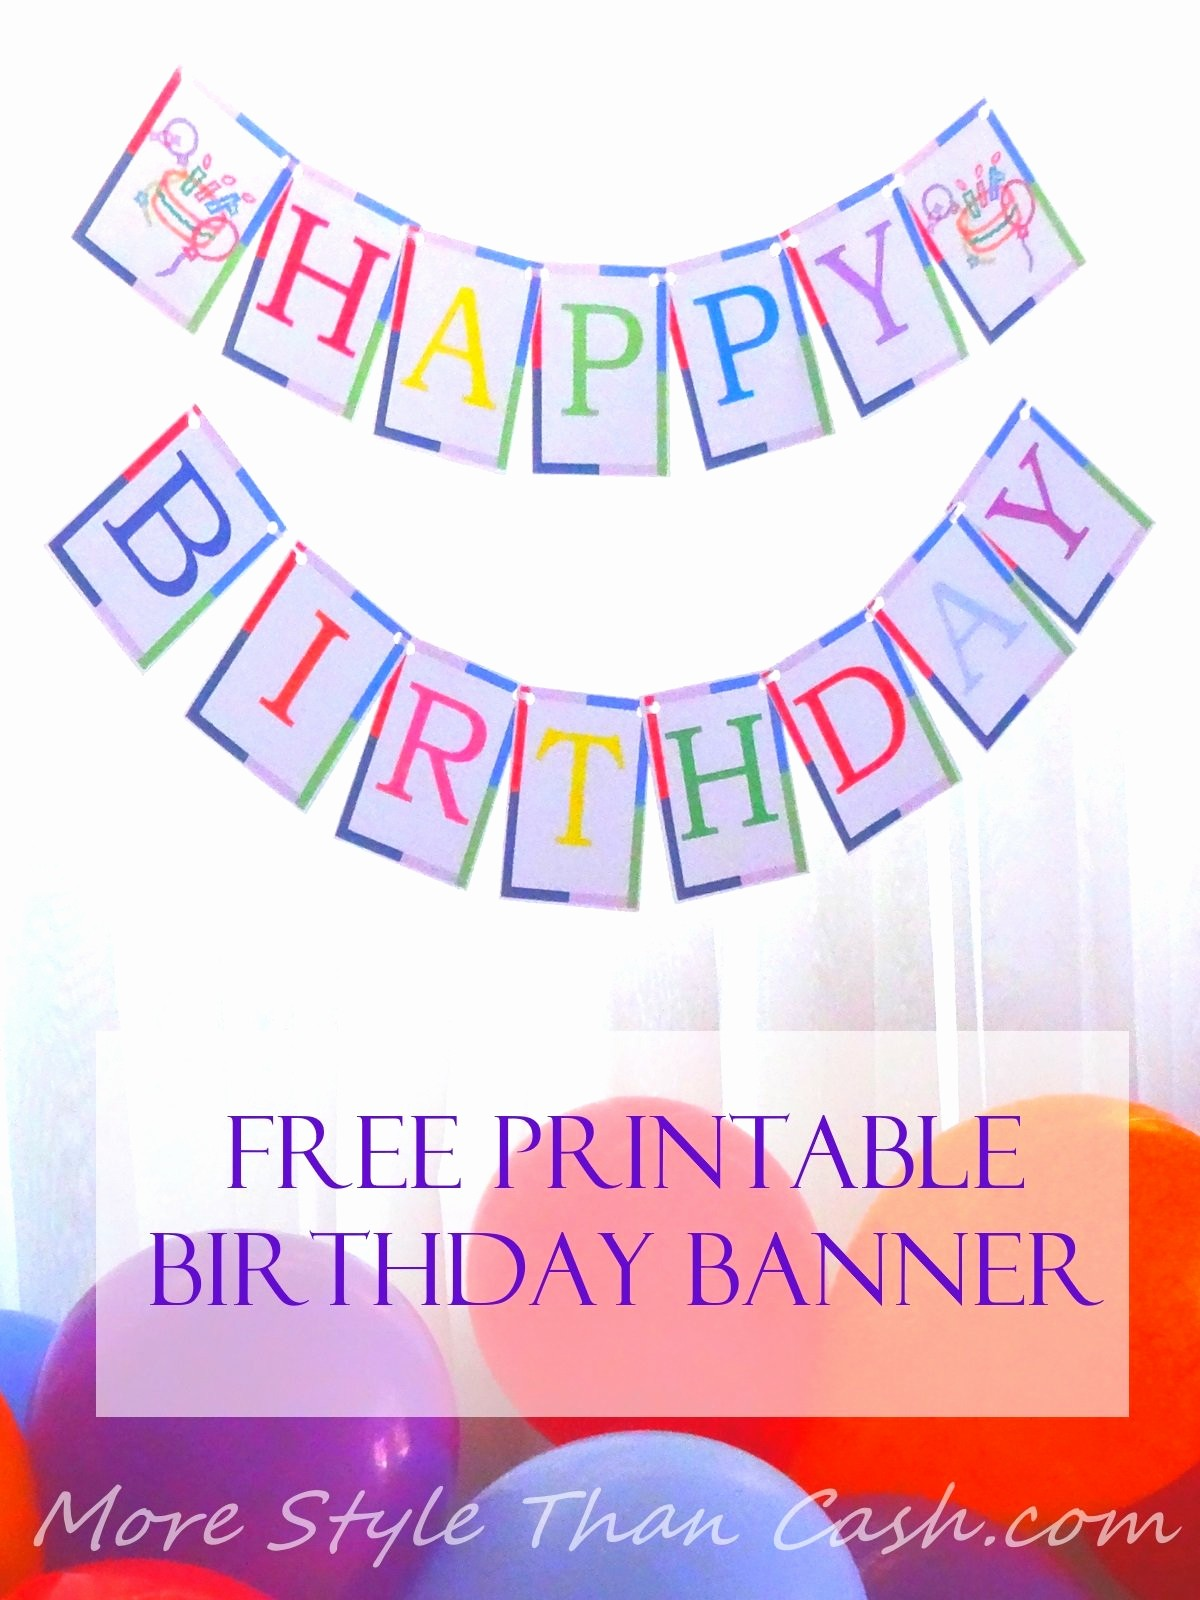 Happy Birthday Banner Print Out Luxury Free Printable Birthday Banner